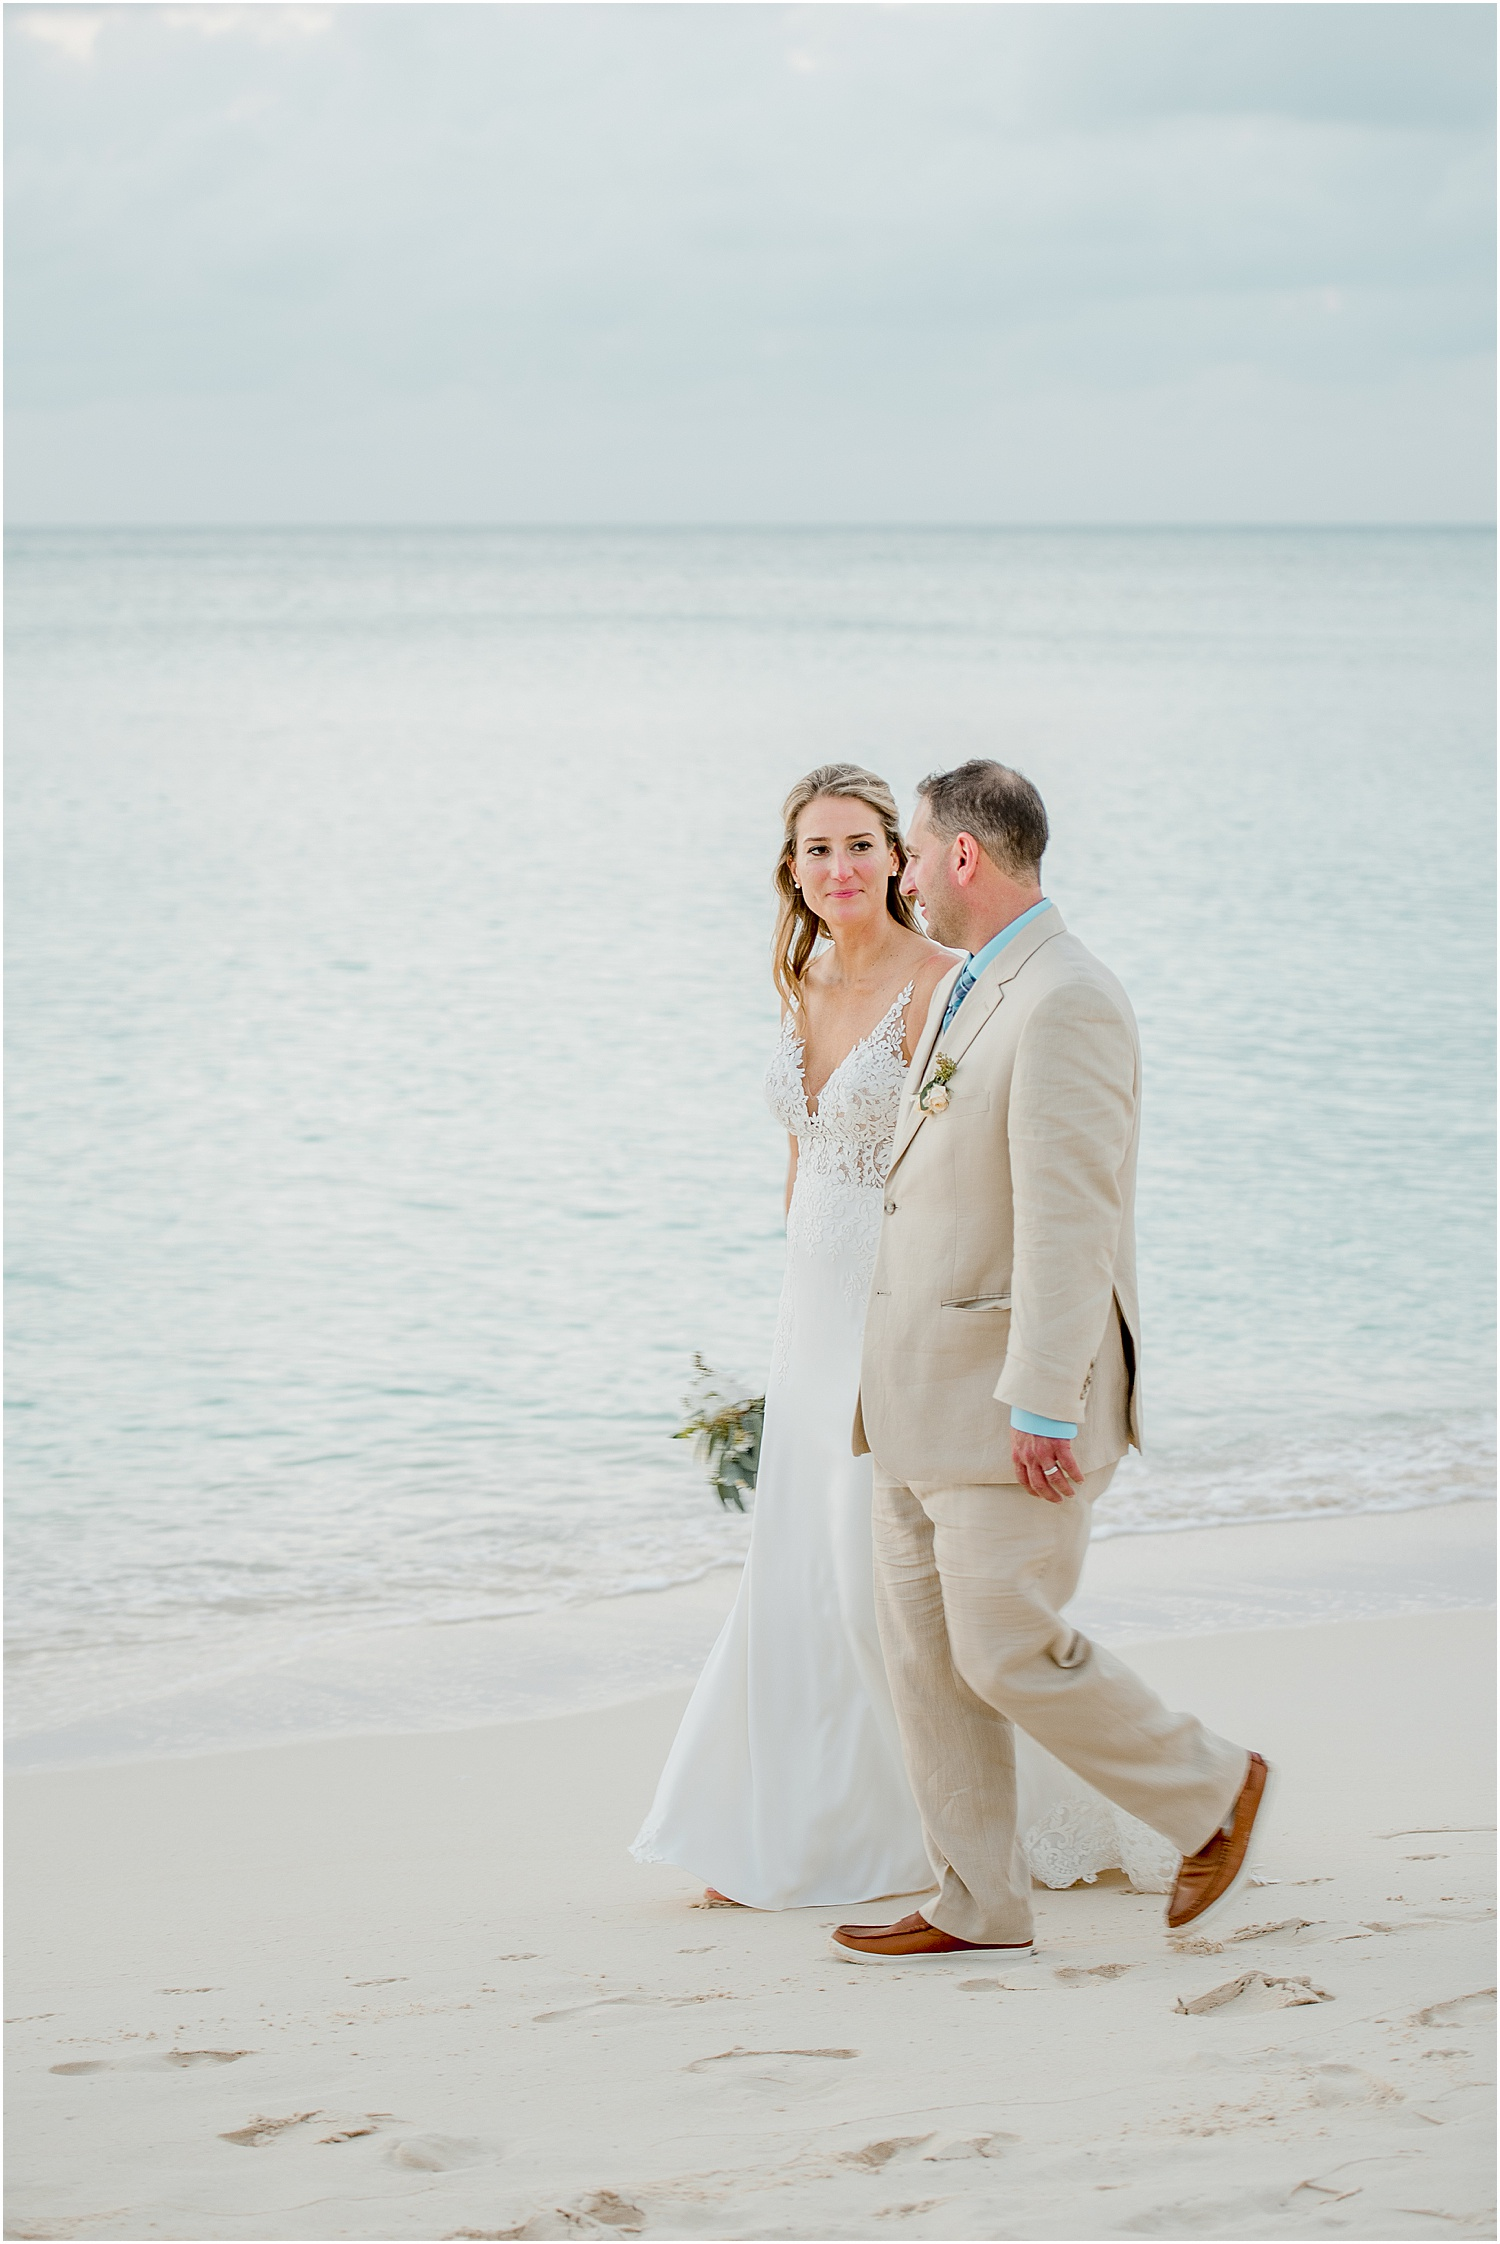 Governors Beach Cayman Islands Wedding by Janet Jarchow